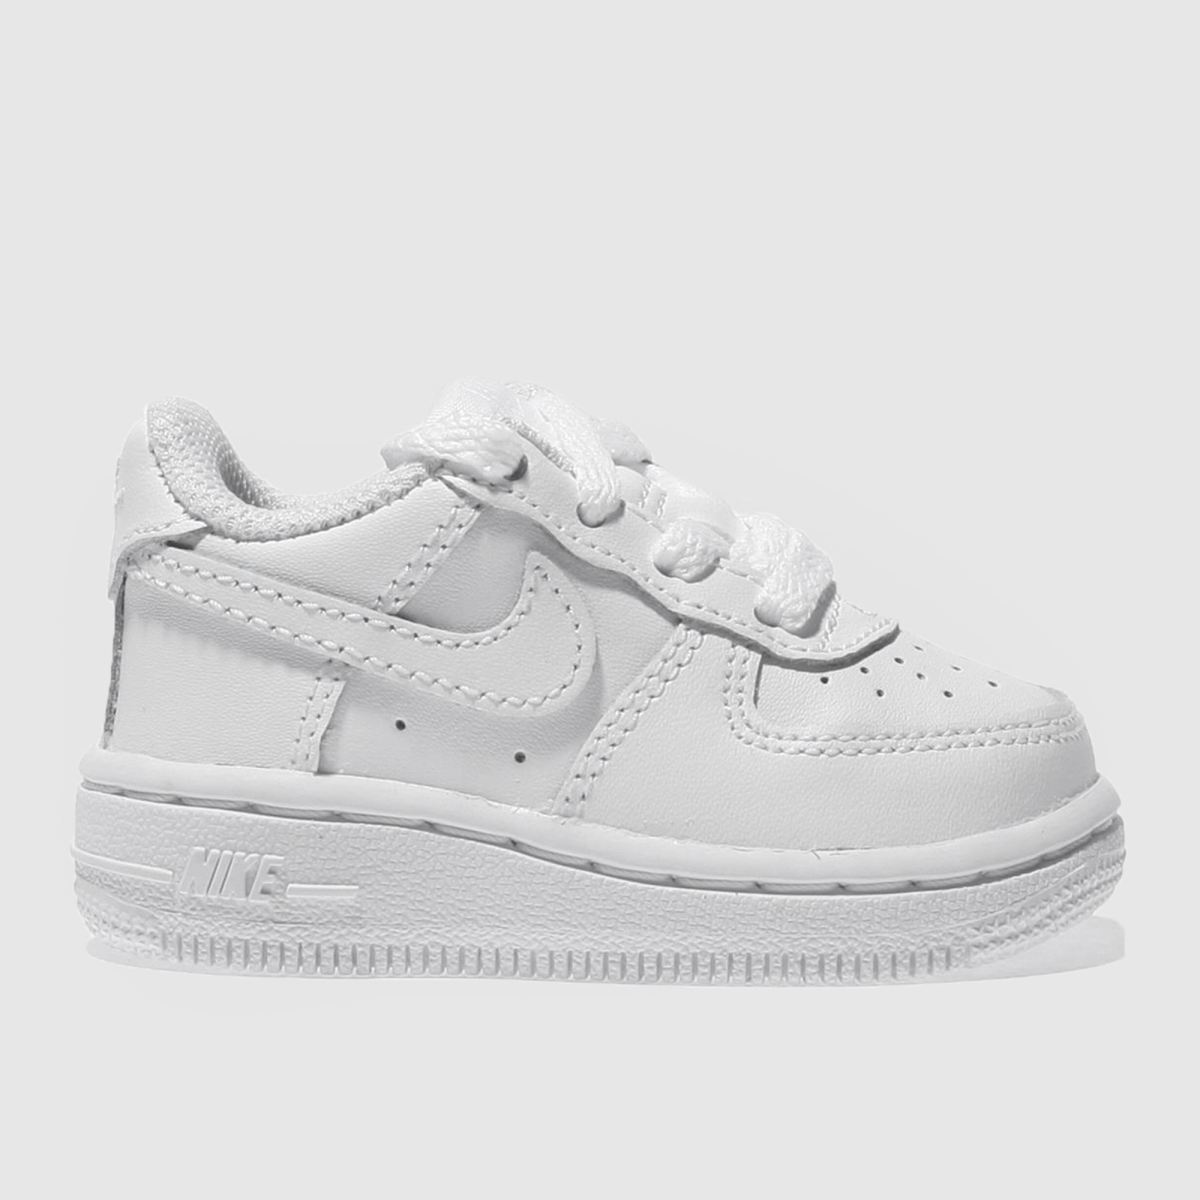 Nike White Air Force 1 Unisex Toddler Toddler